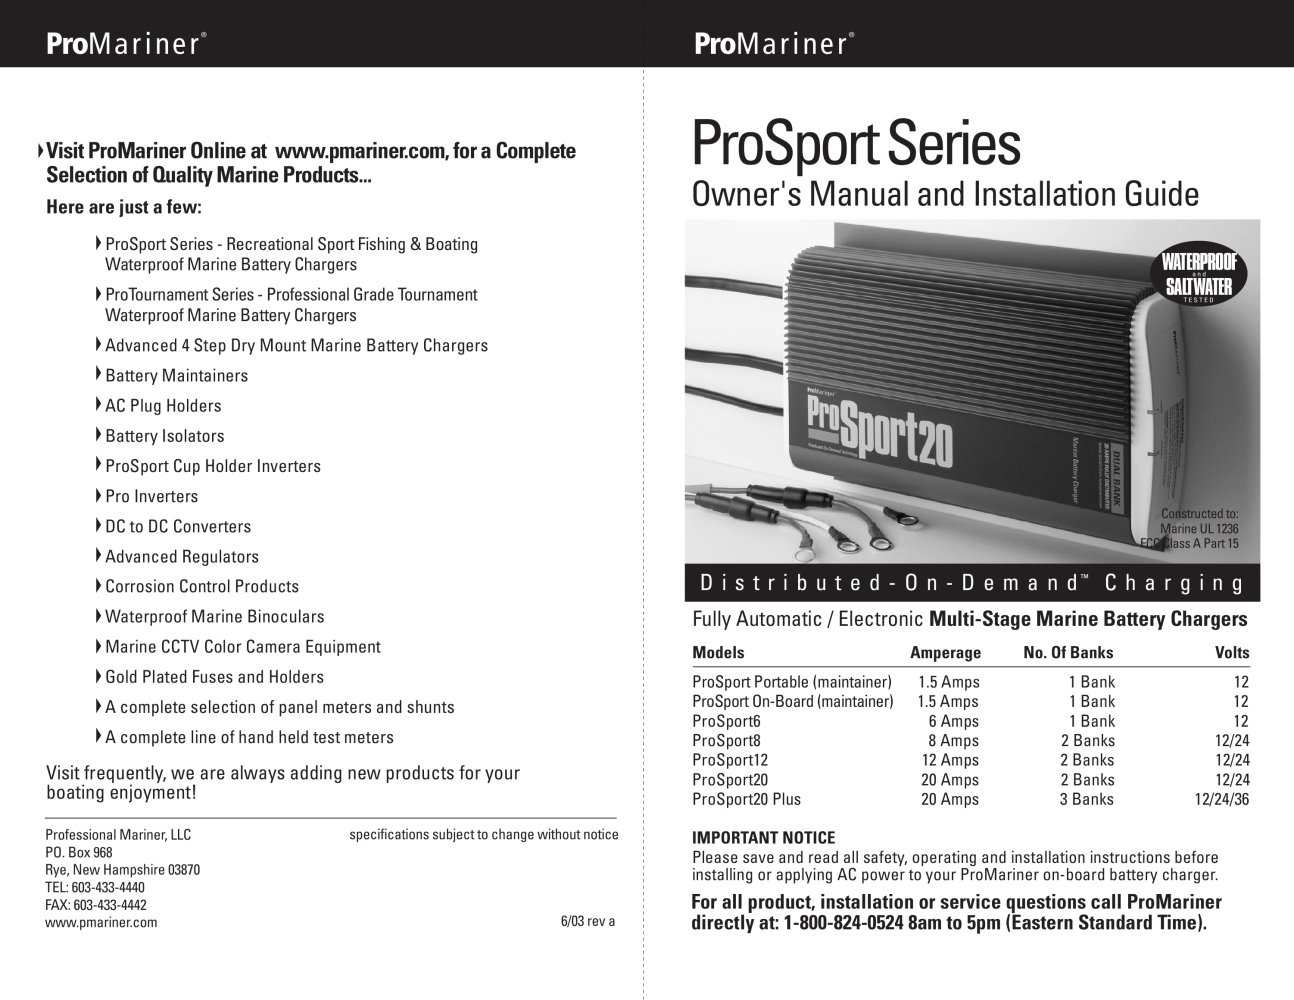 Miraculous Prosport Series Professional Mariner Pdf Catalogs Wiring 101 Akebwellnesstrialsorg